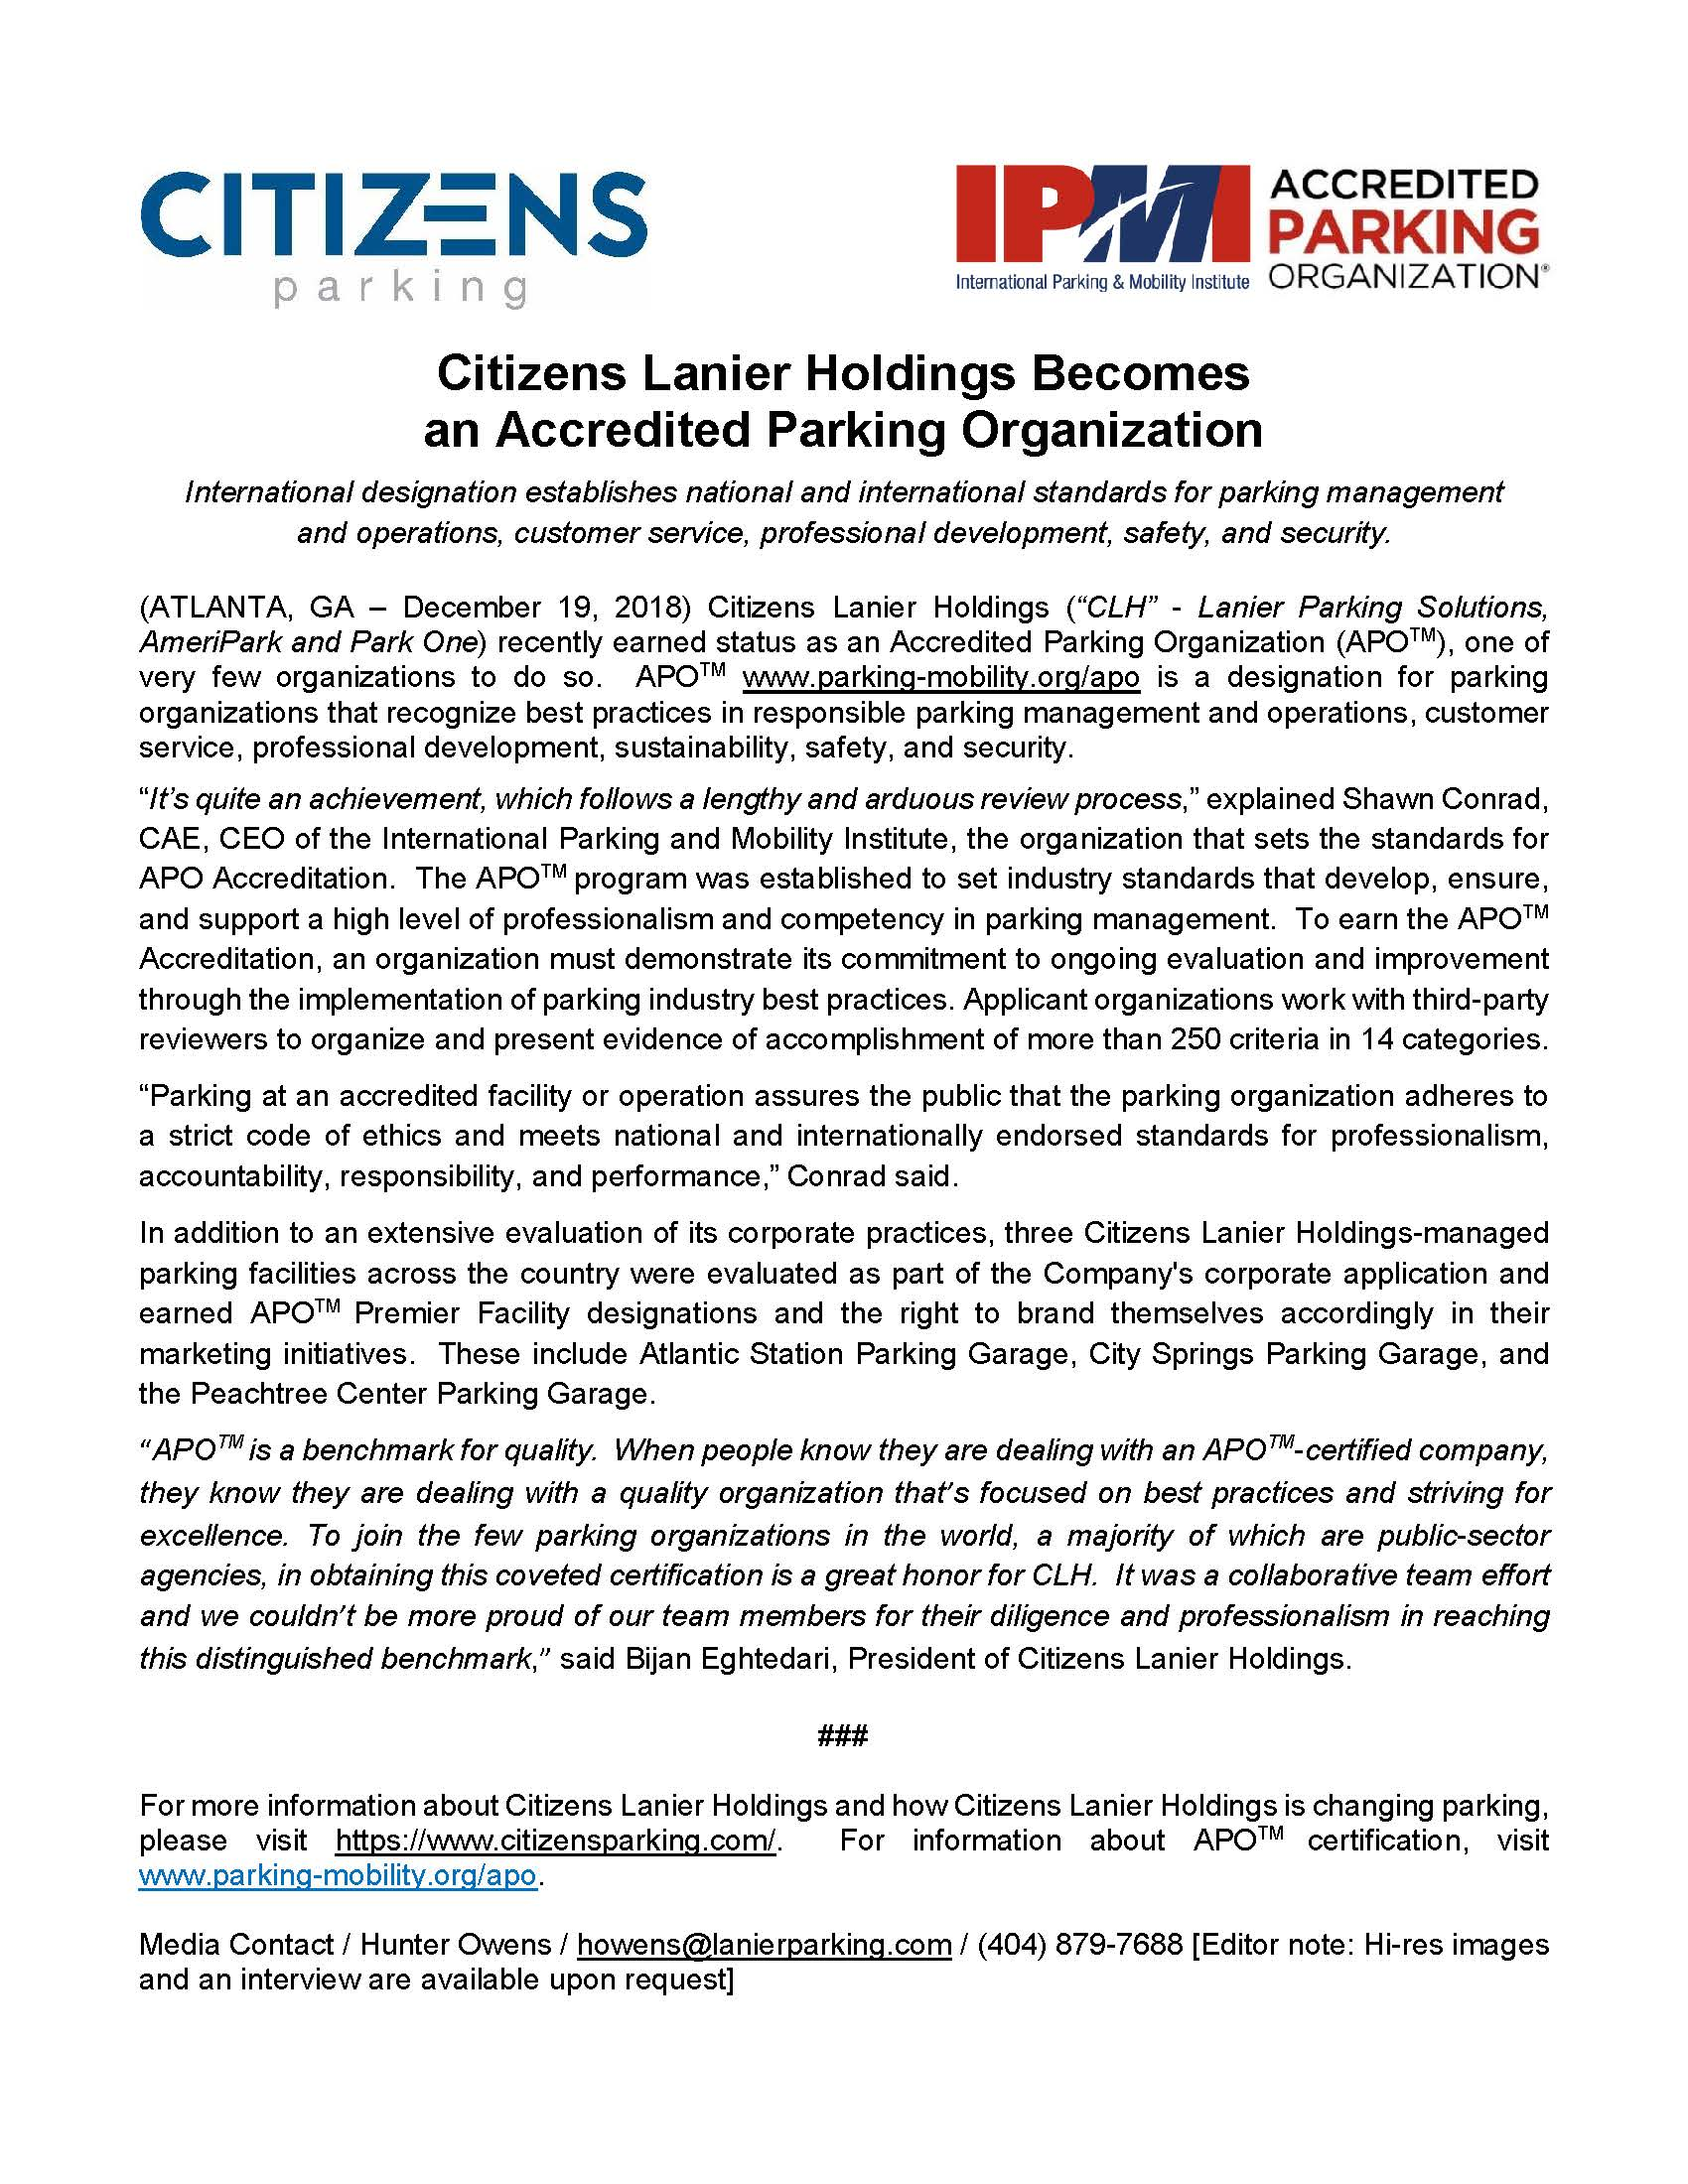 Citizens Lanier Holdings Becomes an Accredited Parking Organization